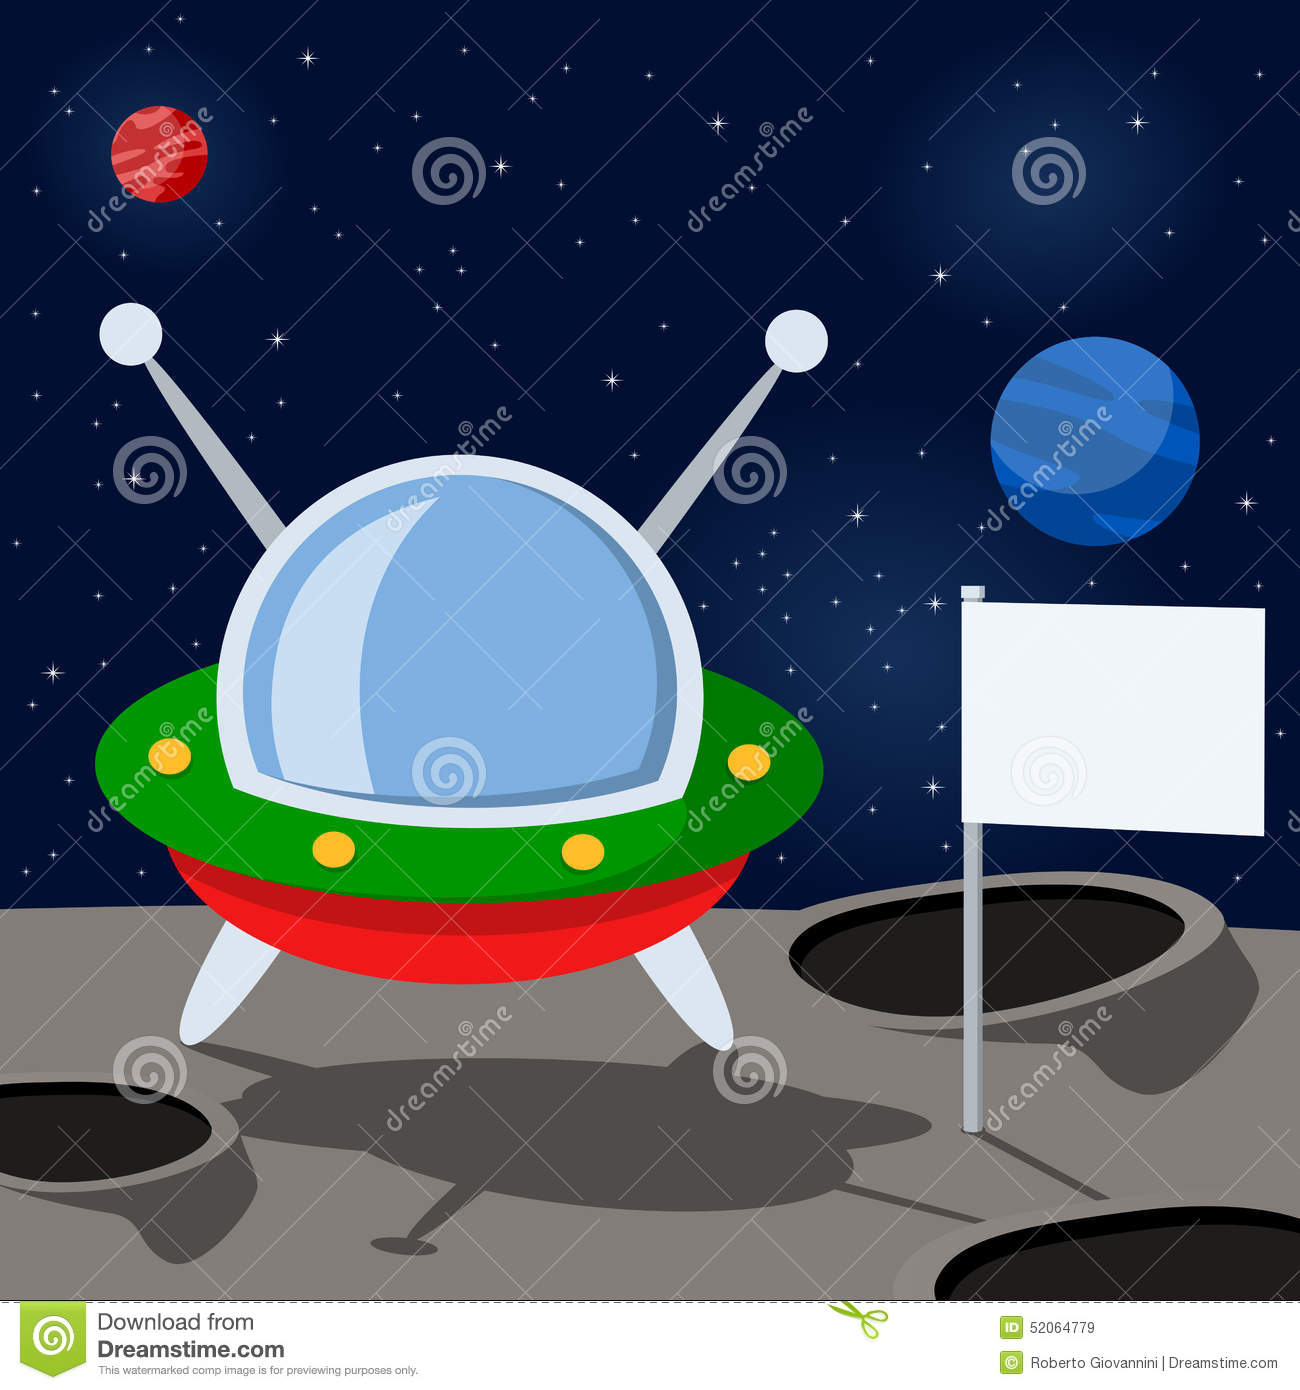 Cartoon Spacecraft on a Mysterious Planet